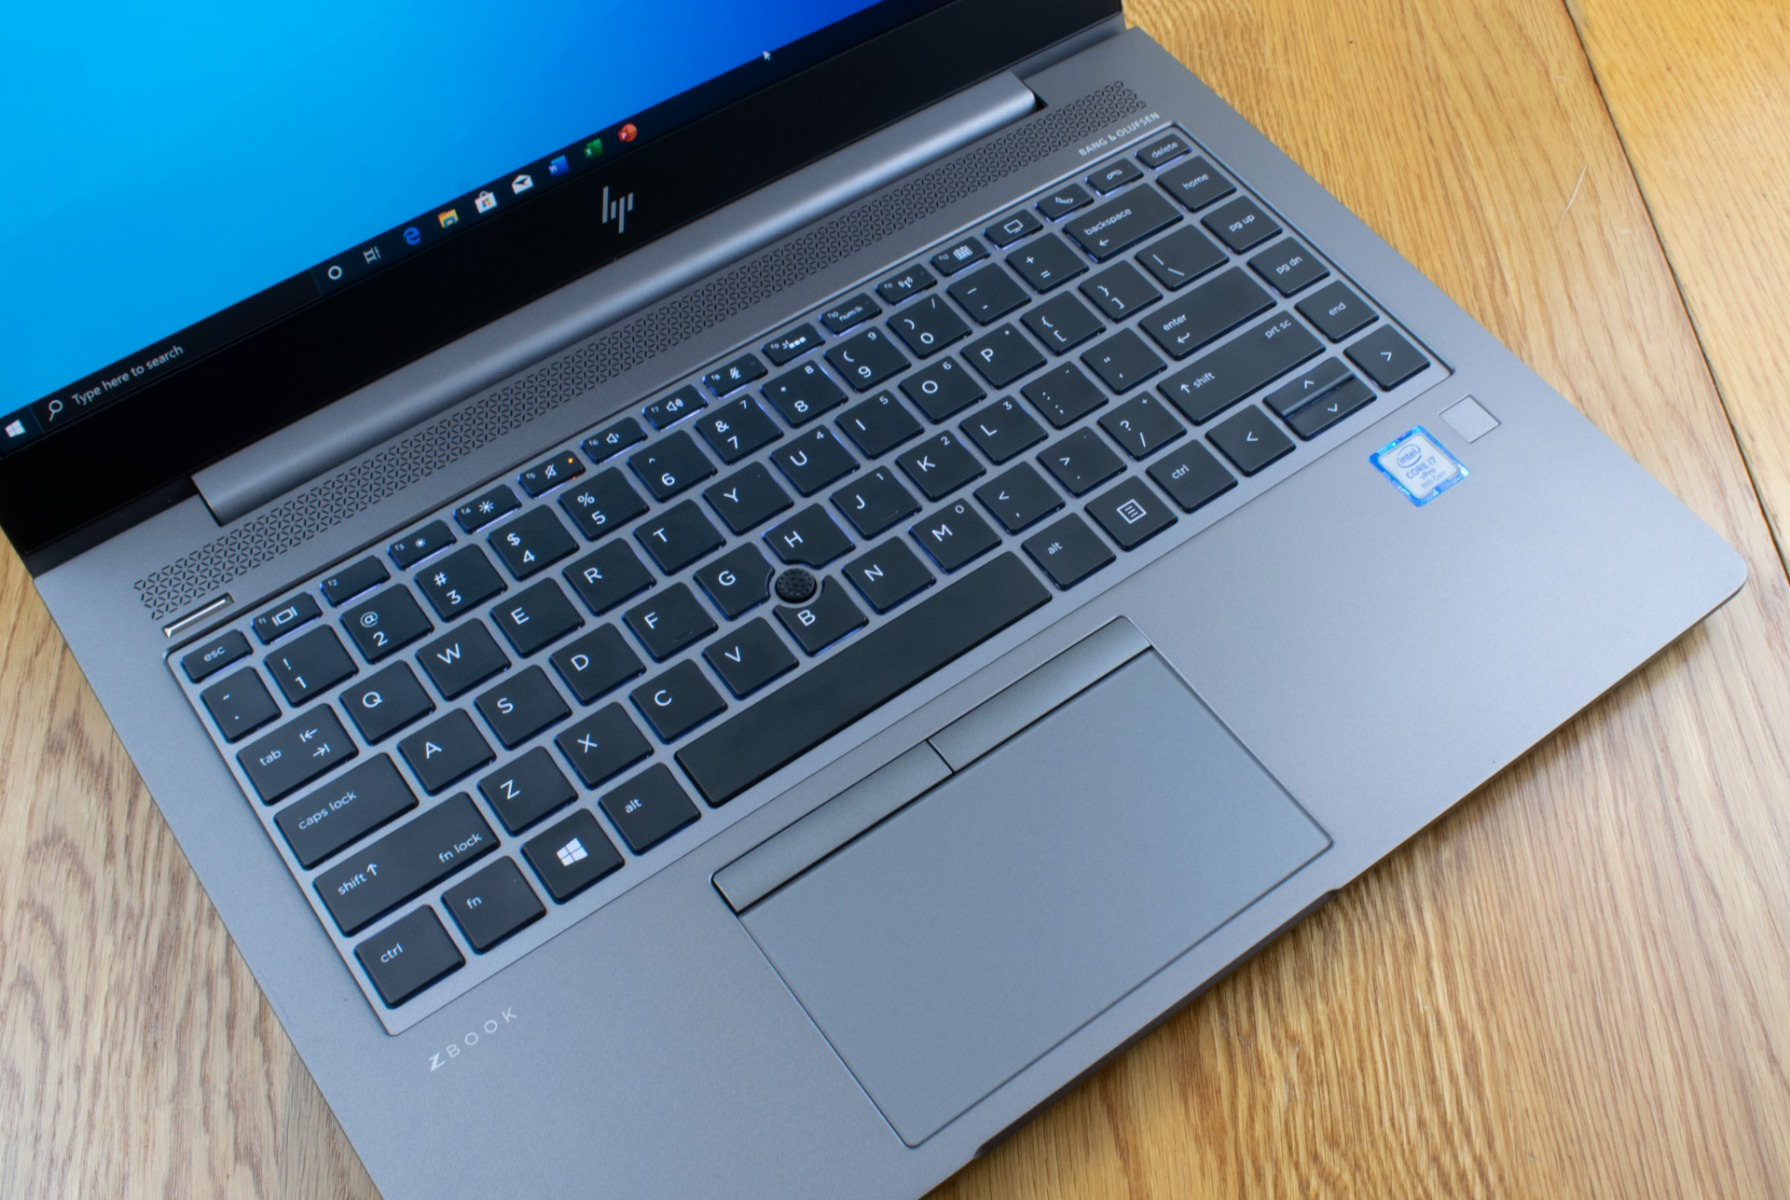 HP Zbook 14u G6 Review: A Thin, Powerful Mobile Workstation